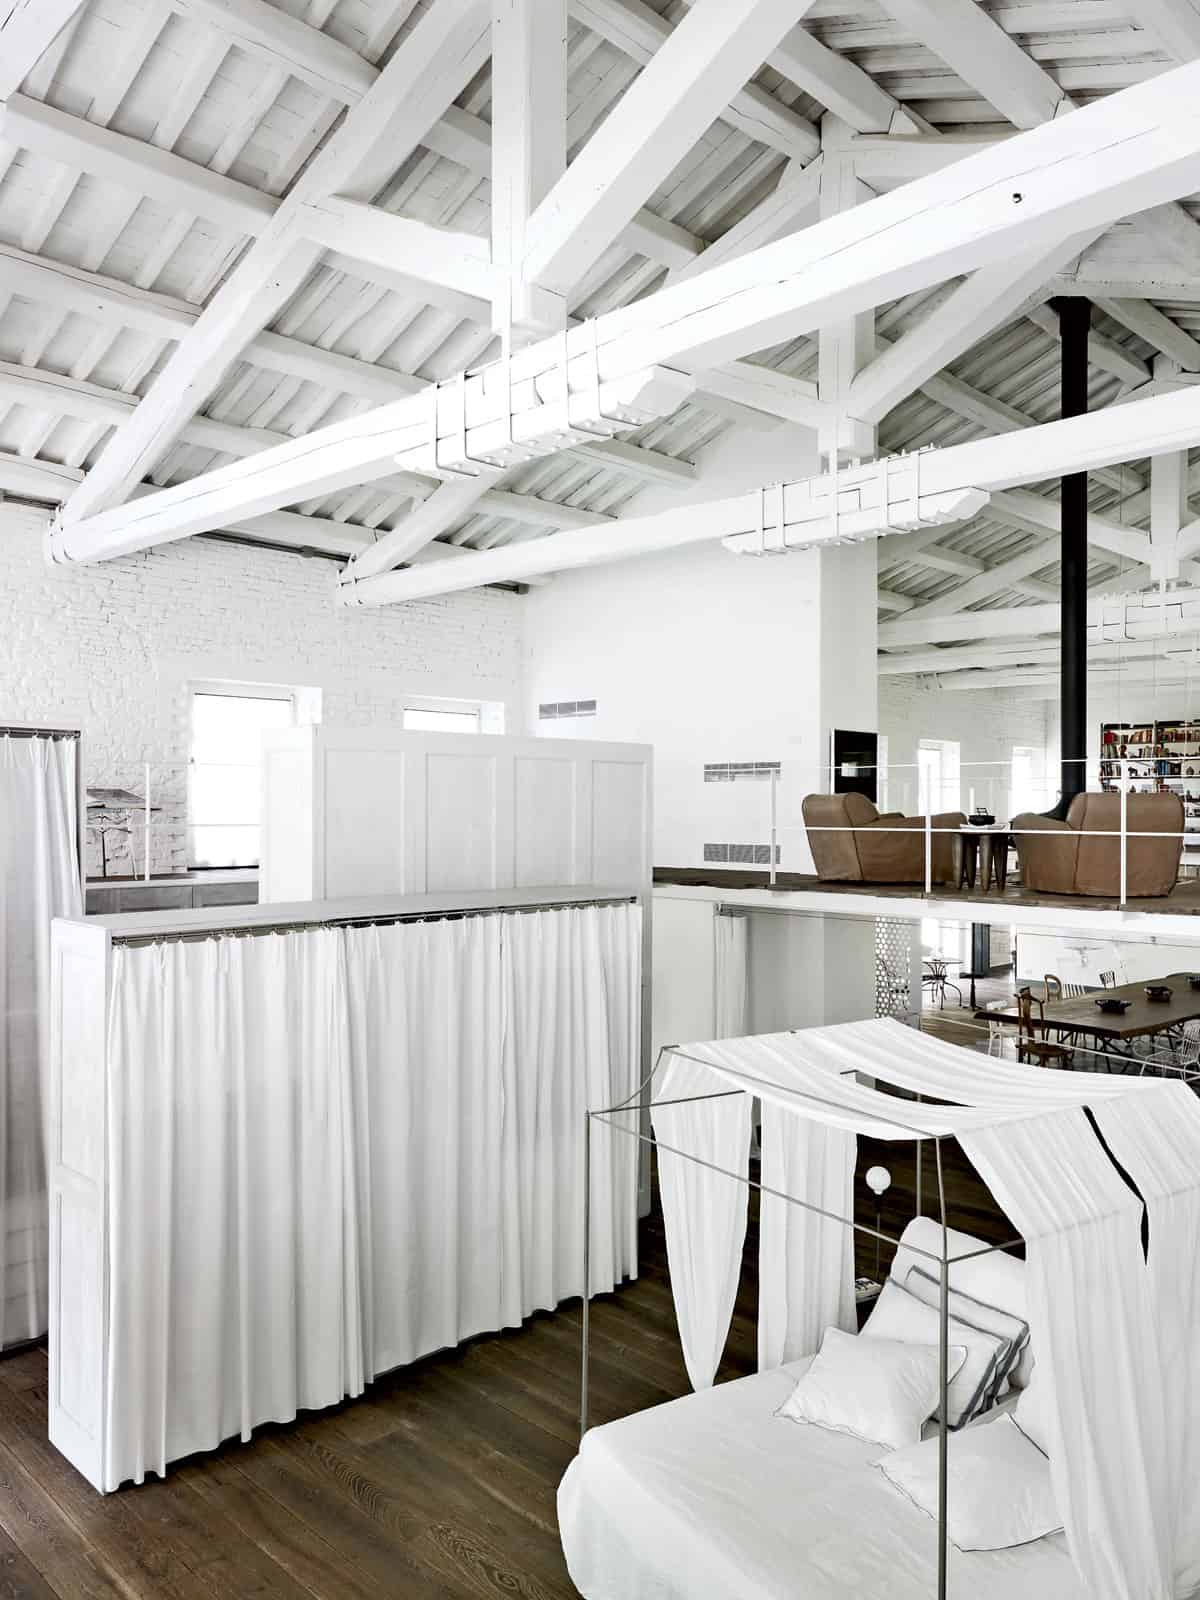 Heavenly Interiors and Beautiful Floors: a Warehouse Renovation by ...